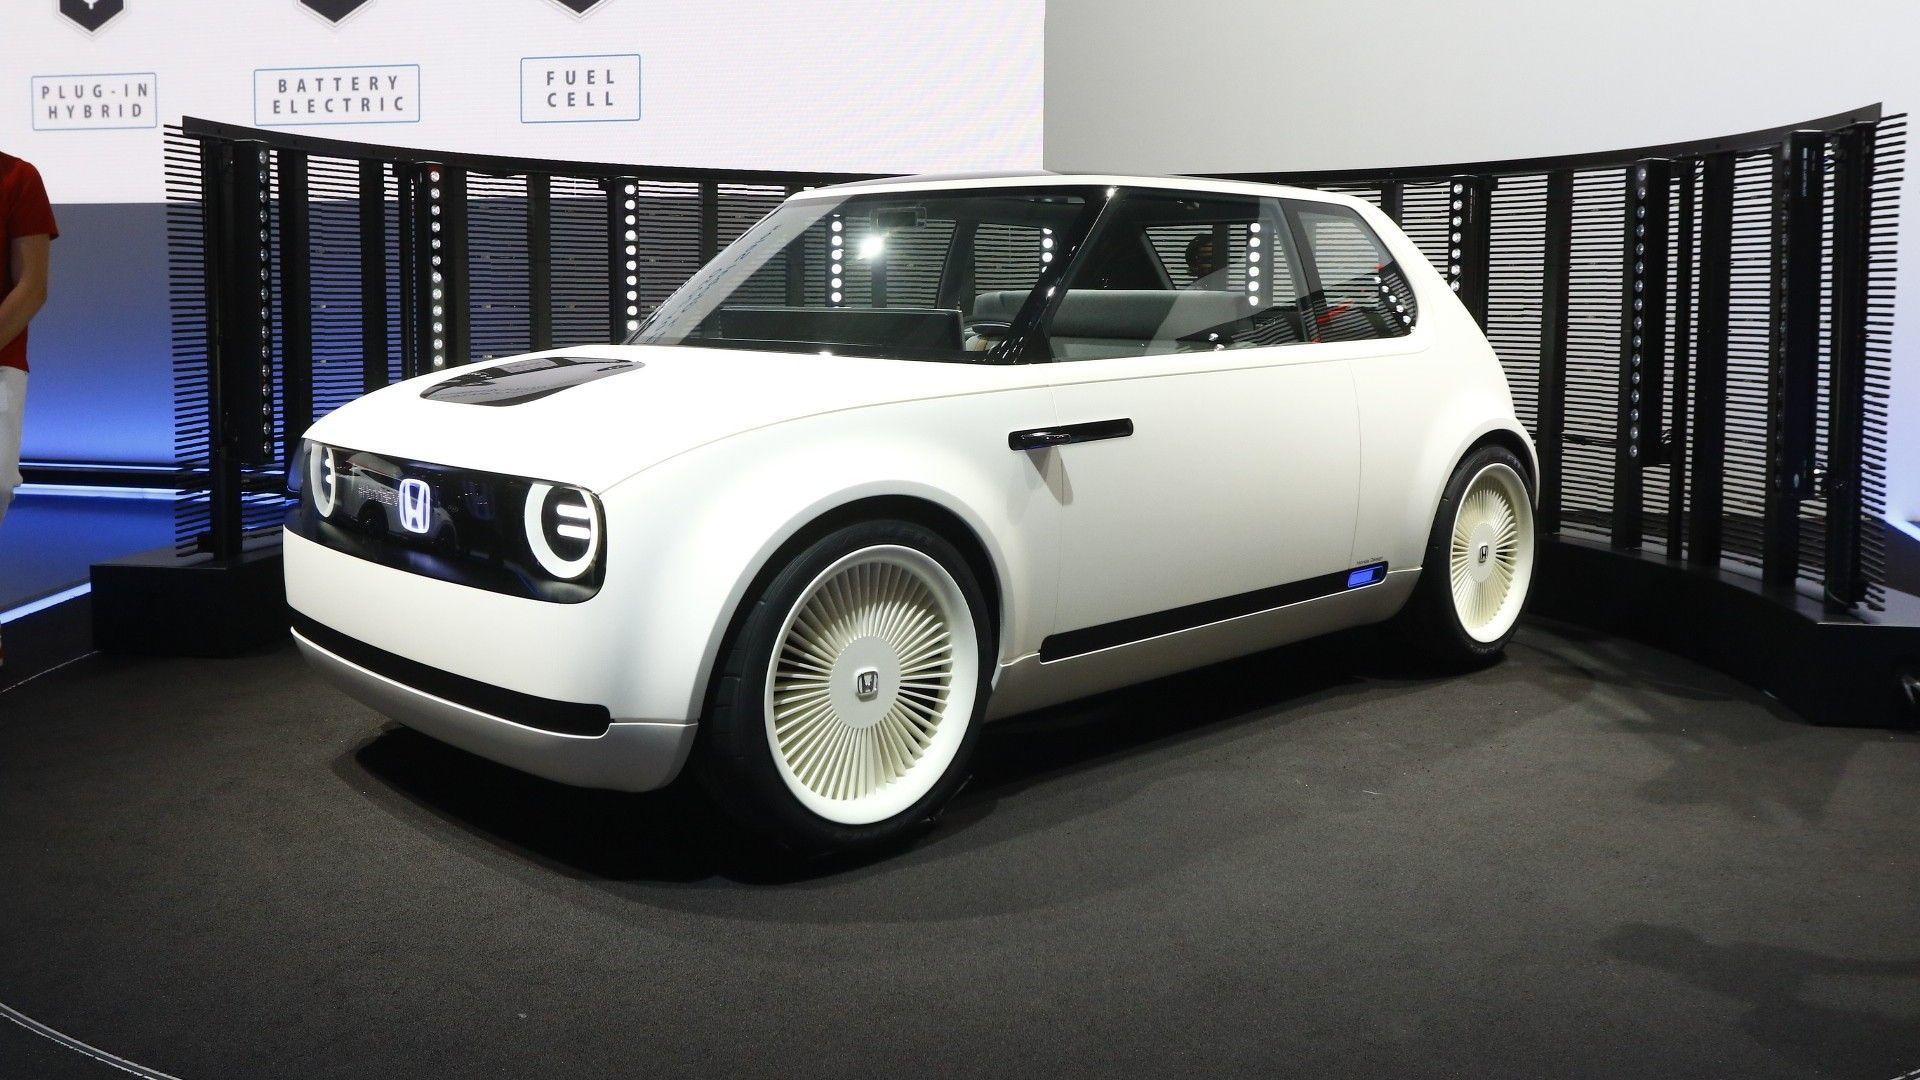 Urban Electric Cars For Sale